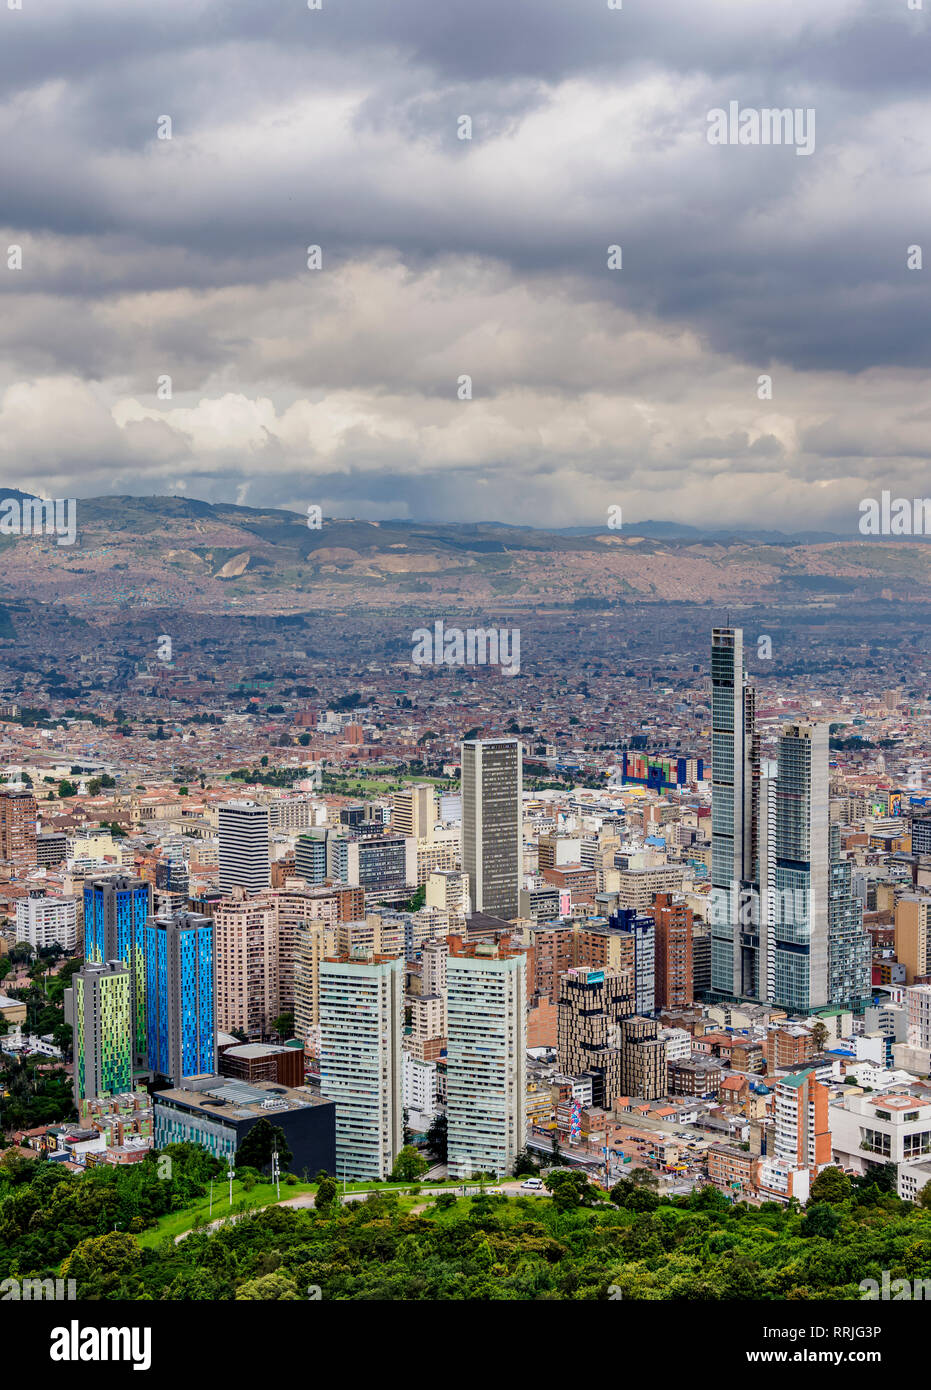 High rise buildings seen from Mount Monserrate, Bogota, Capital District, Colombia, South America Stock Photo